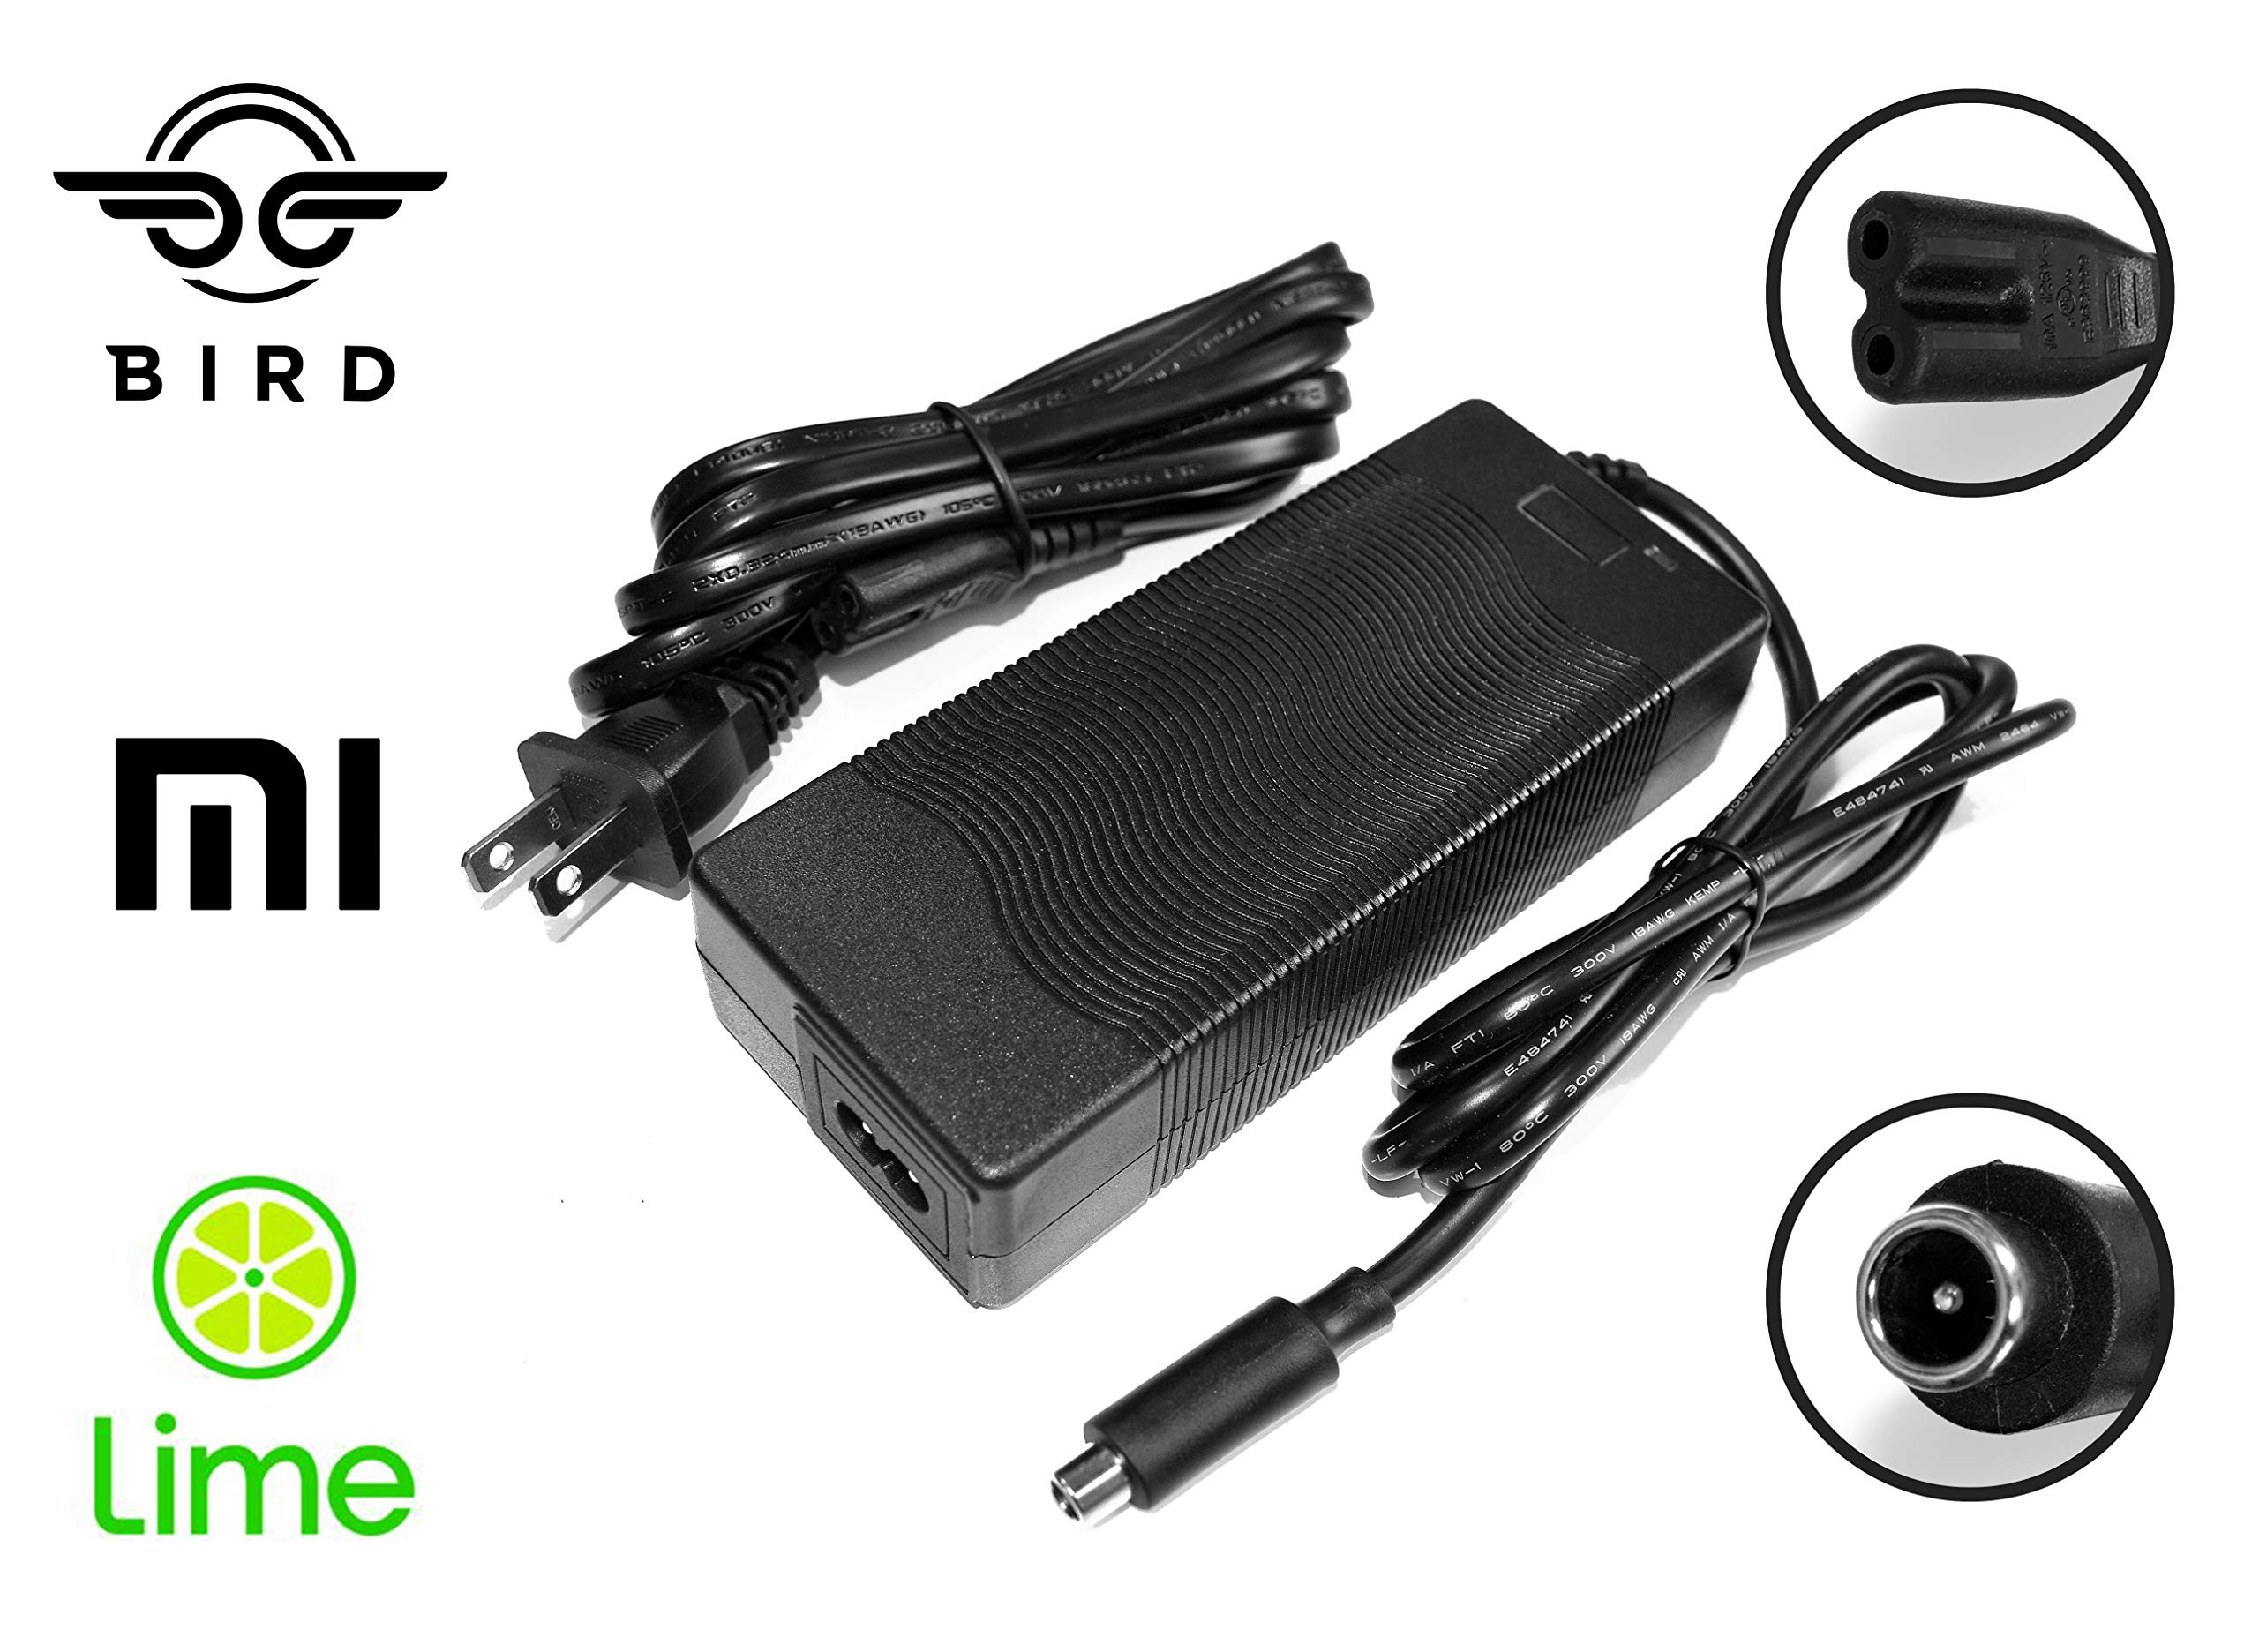 ACI Super Power Lithium Ion Battery Charger for Bird, Lime, Jump, Spin, Lyft, and Xiaomi Mijia Electric Scooters by ACI Super Power